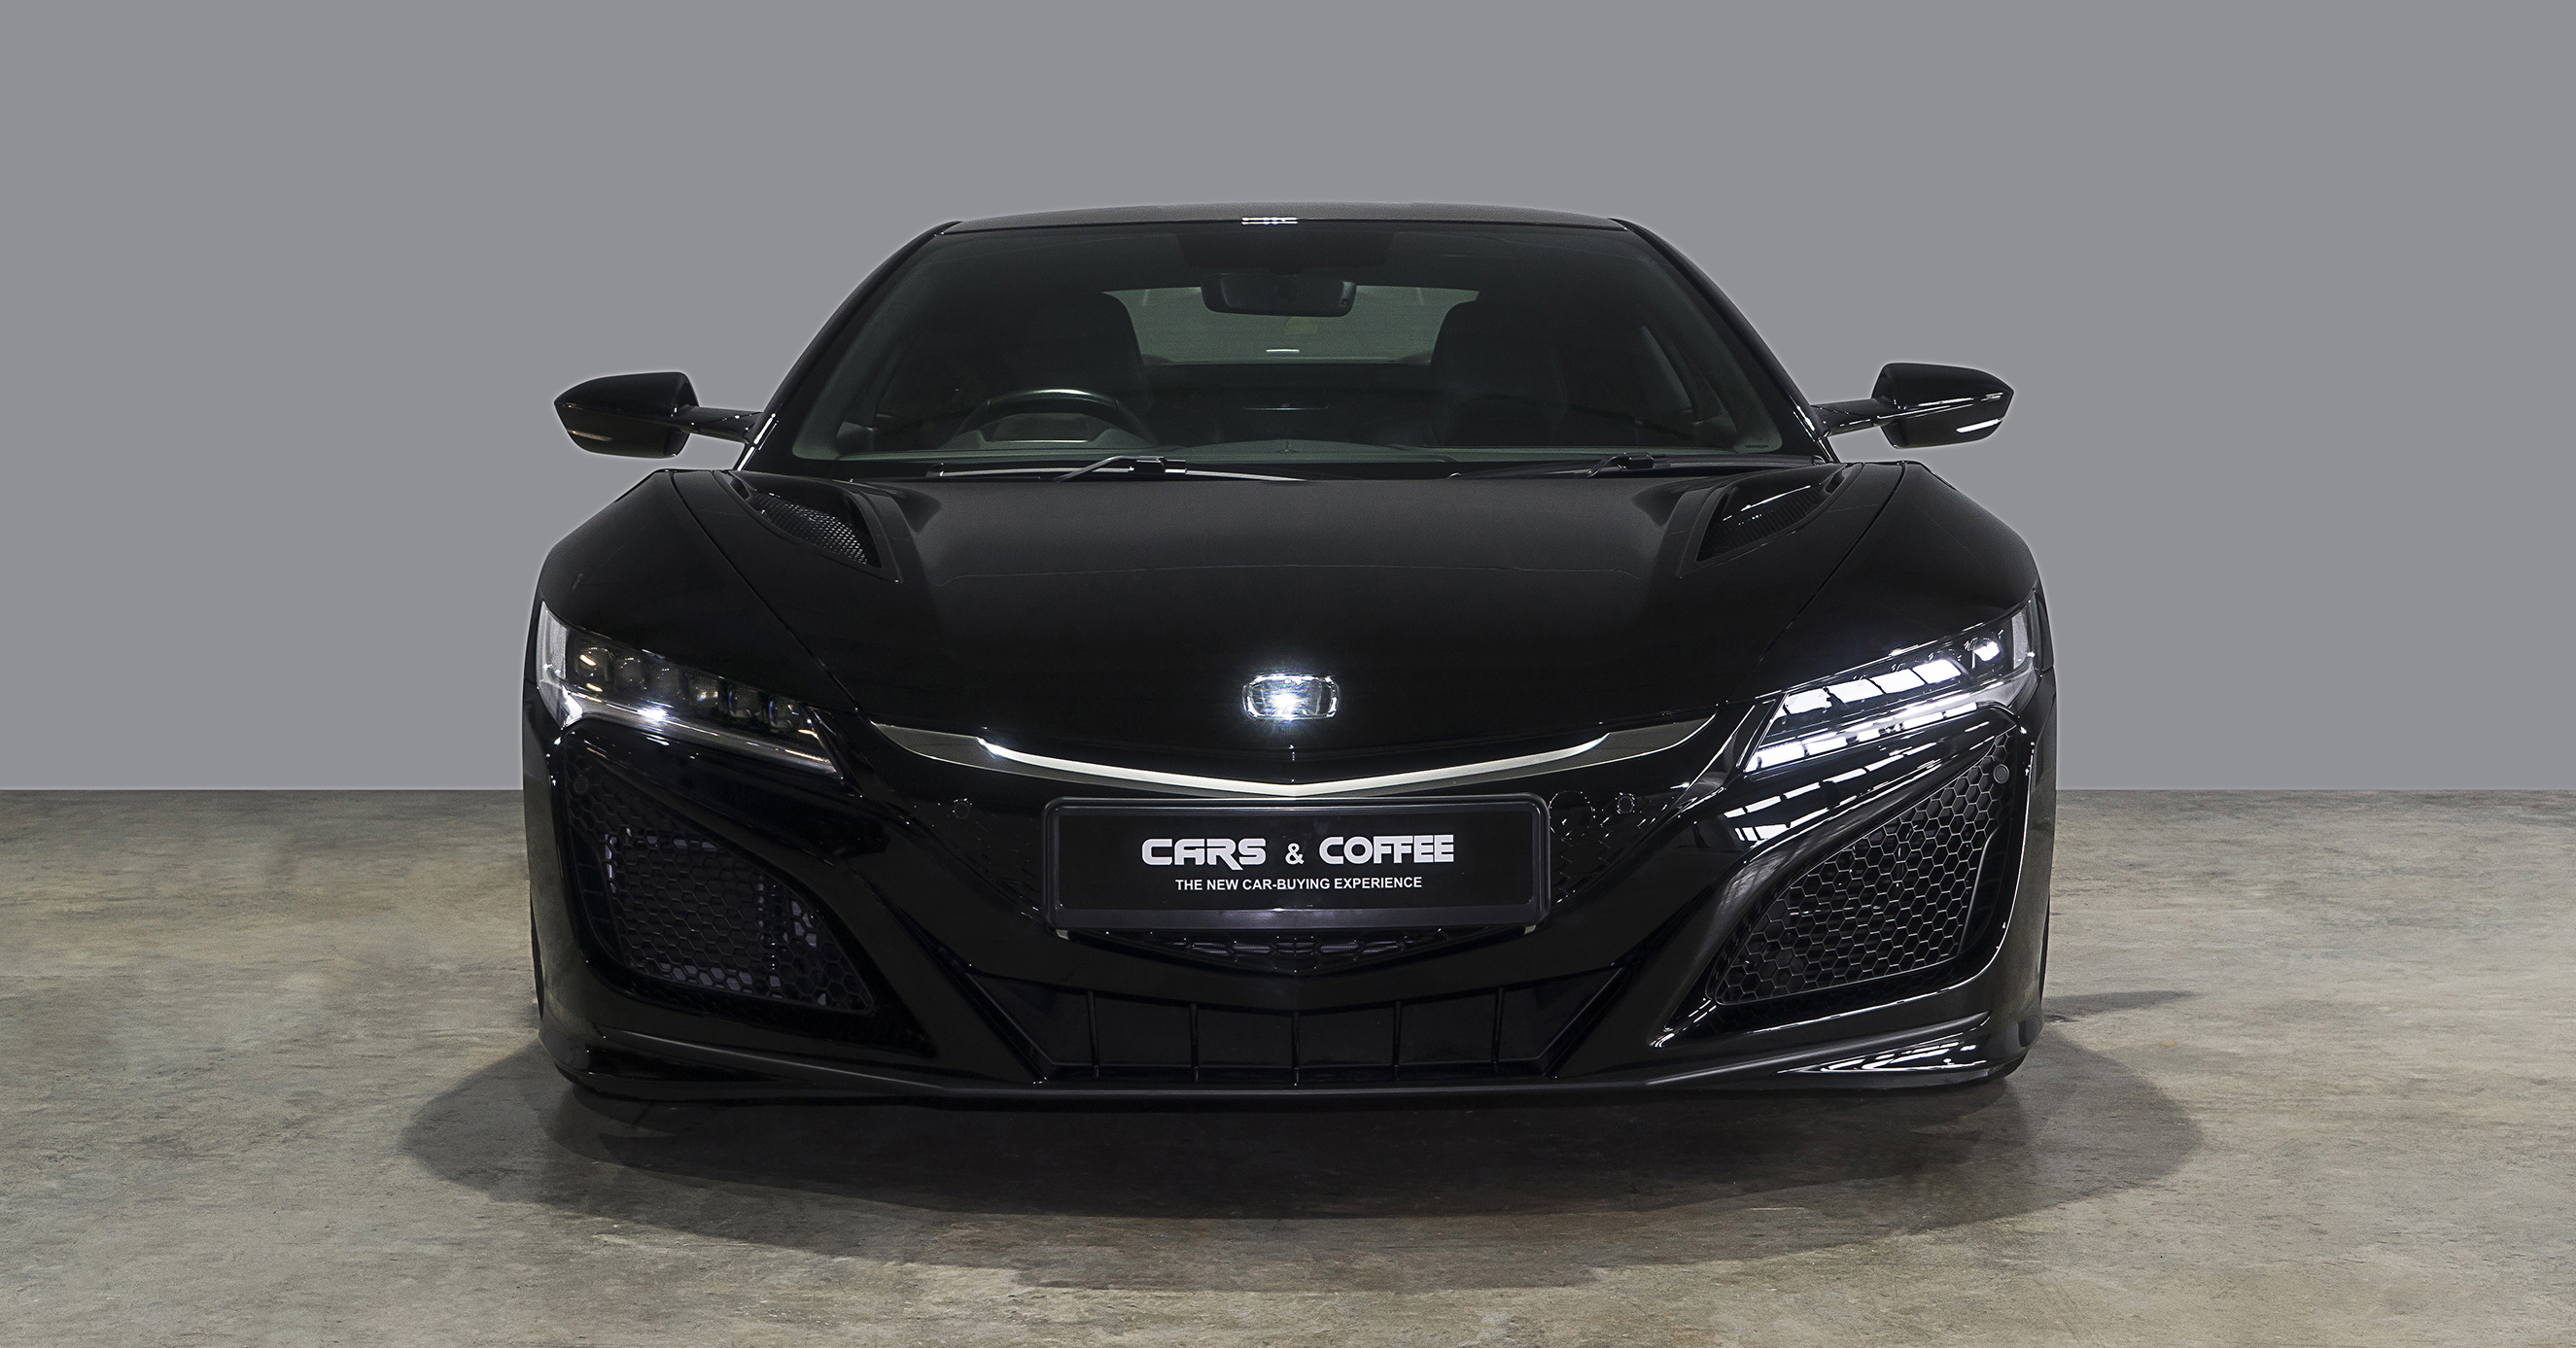 "The Honda NSX is the rebirth of an icon representing the ultimate combination in power, sportiness and efficiency. Dubbed the new sports experience, it was developed under the concept of a ""human-centered supercar""."